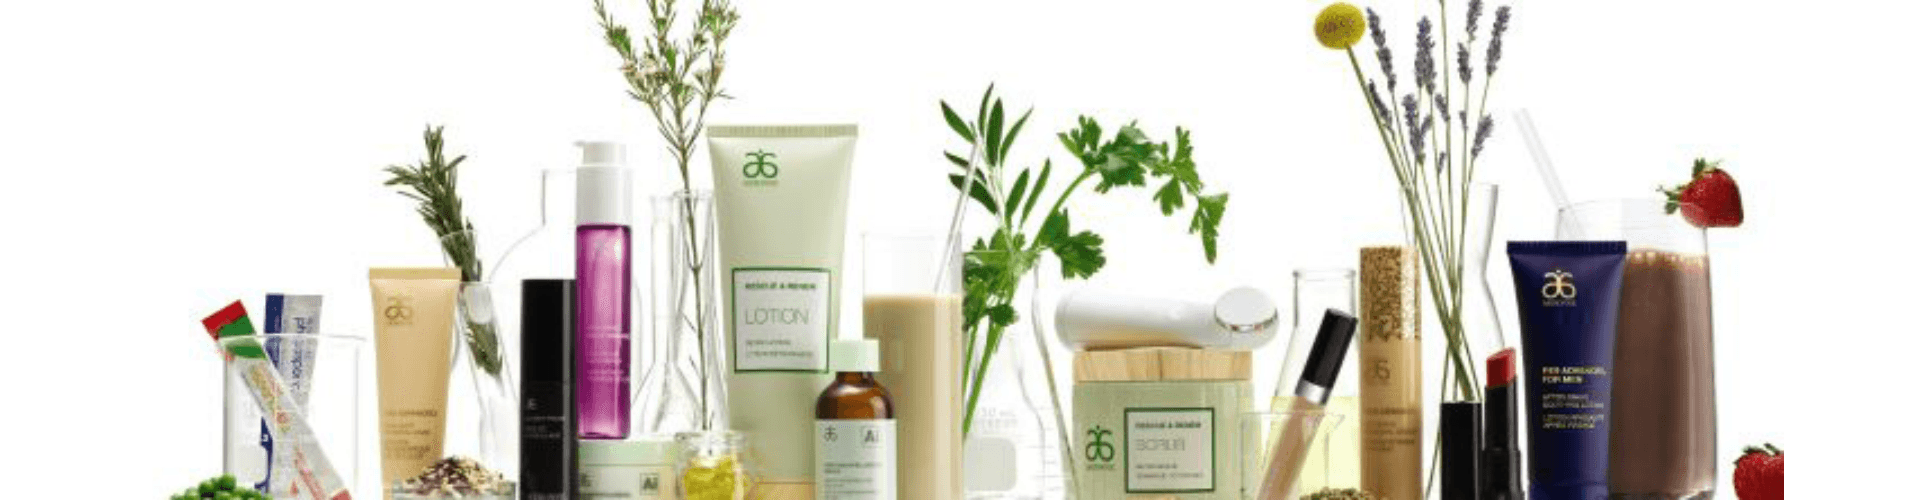 Arbonne Skin Care Transformation Hair Amp Body